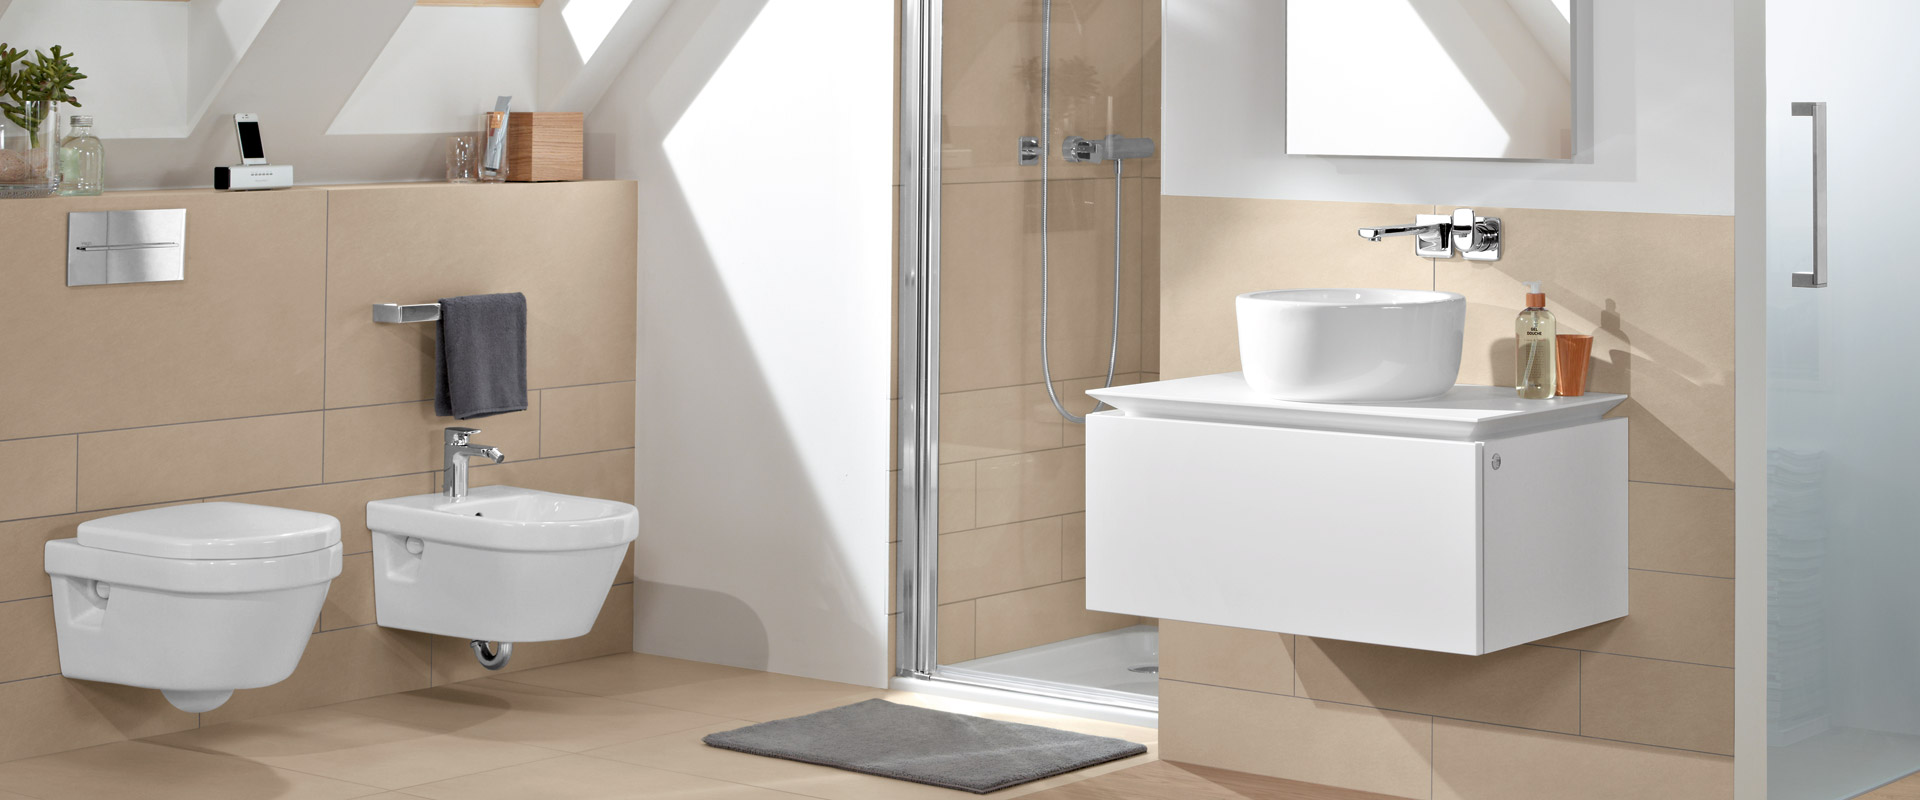 levanto frn - Villeroy And Boch Bathroom Cabinets